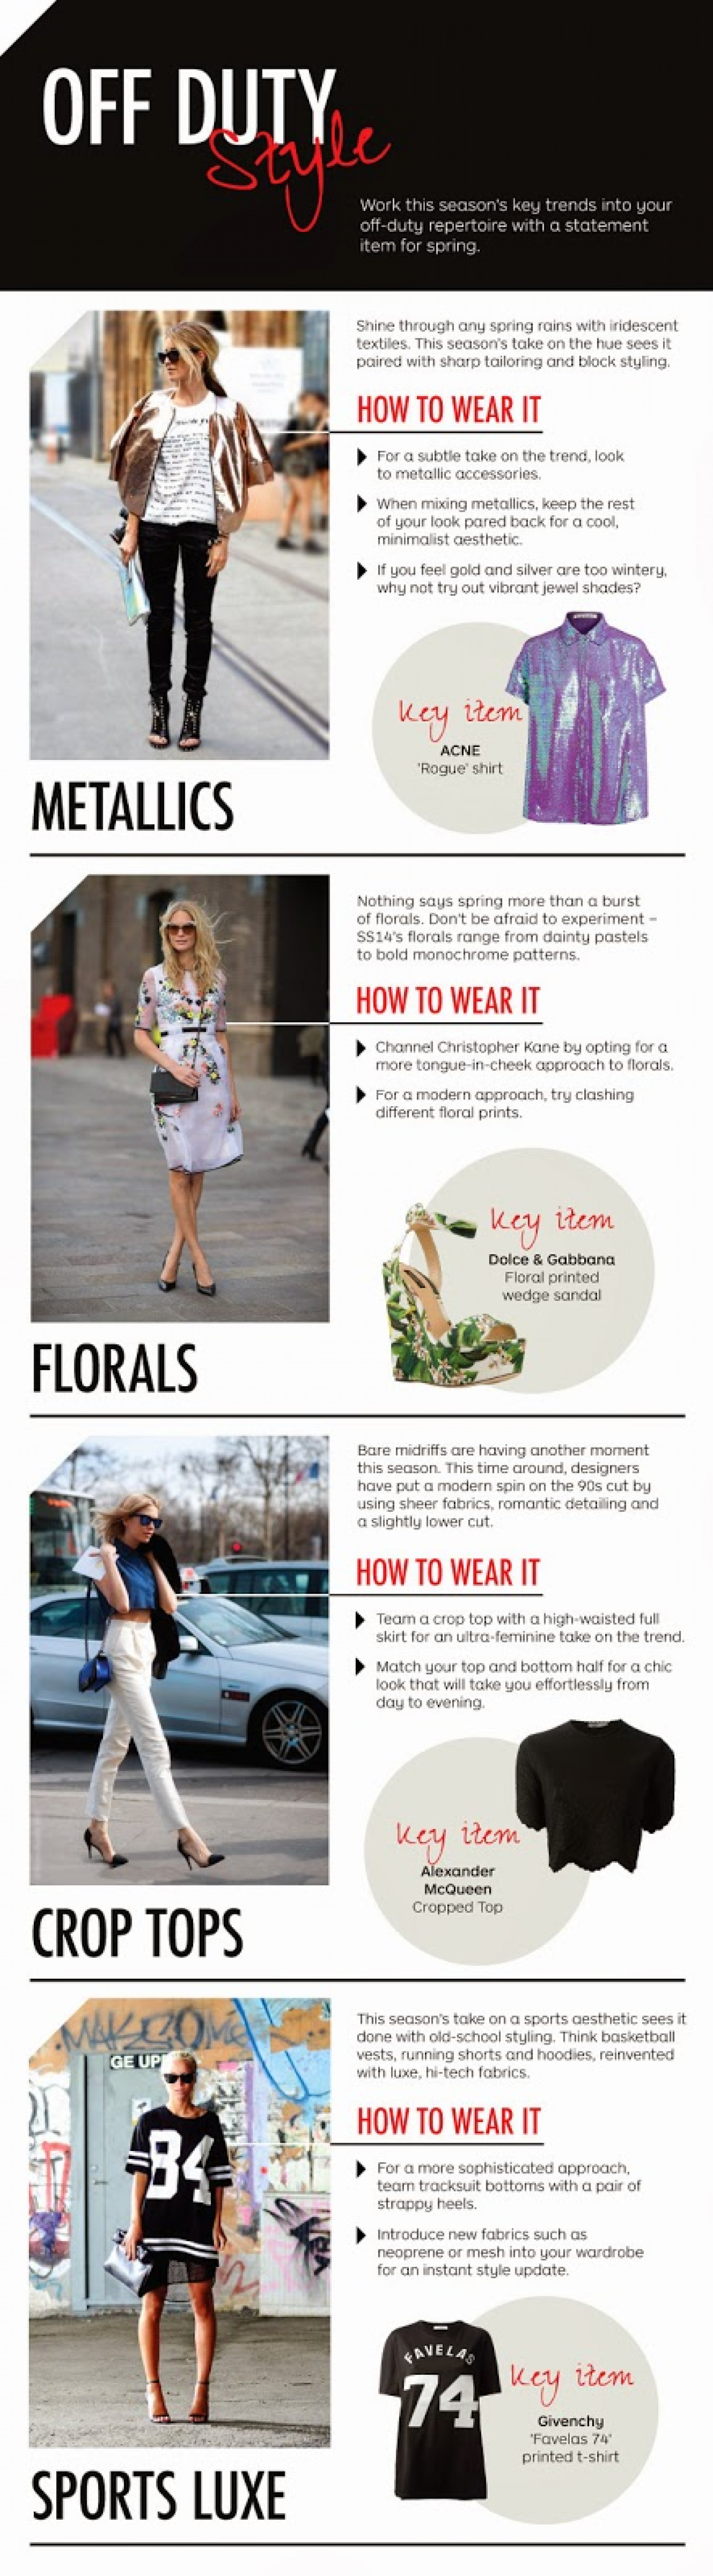 Off Duty Styles Infographic